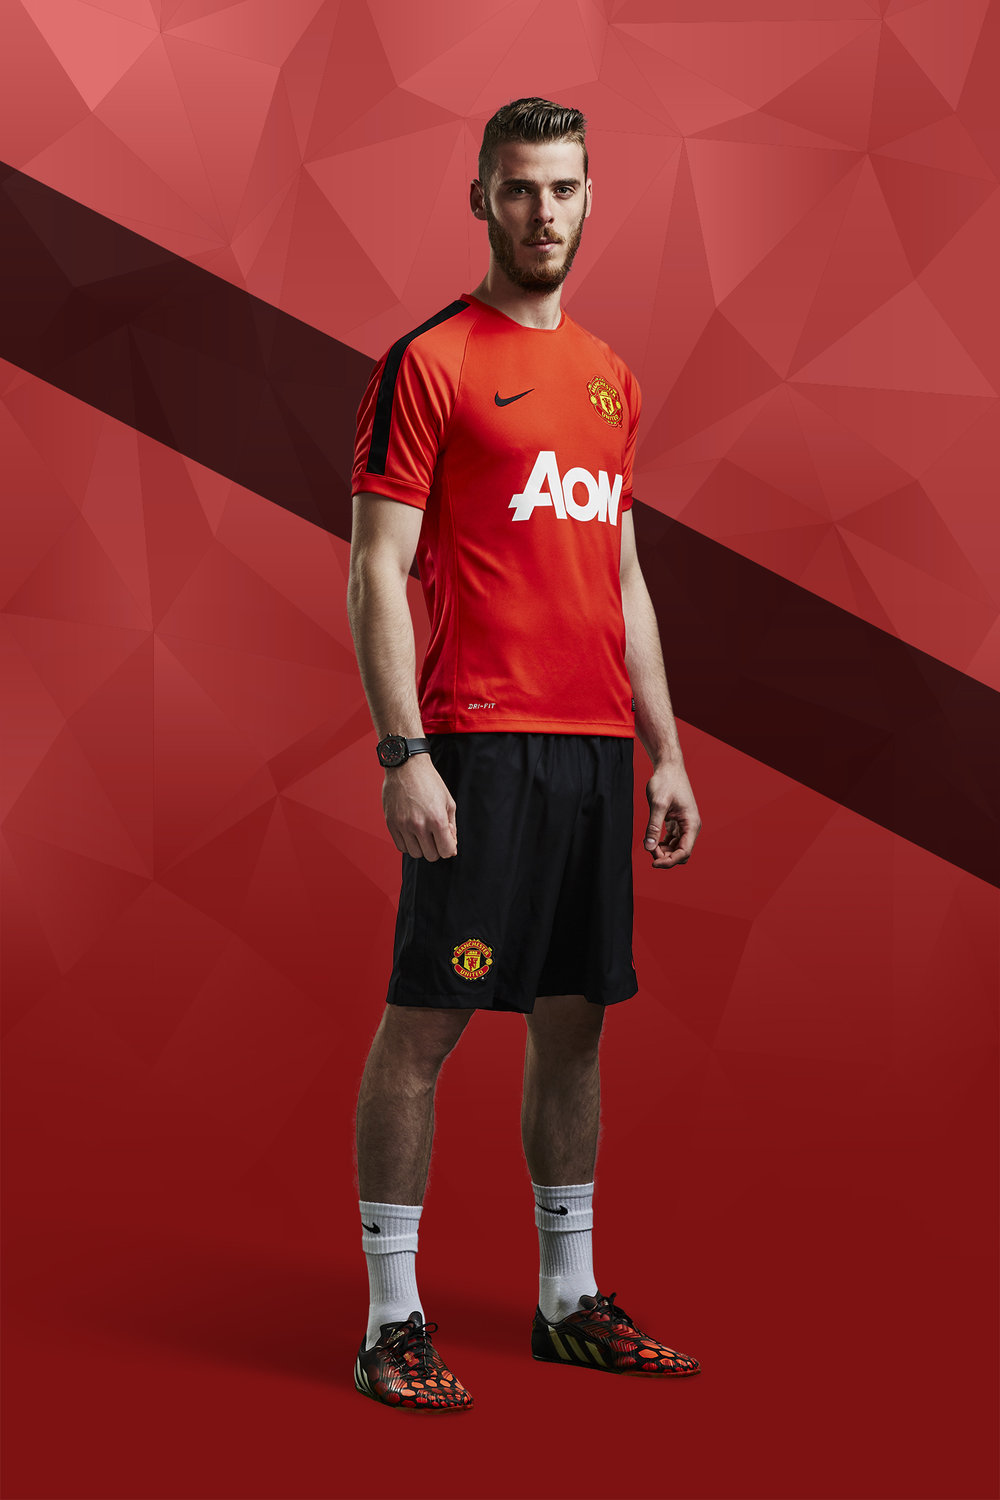 032_DE_05_De Gea_043 beard off.jpg